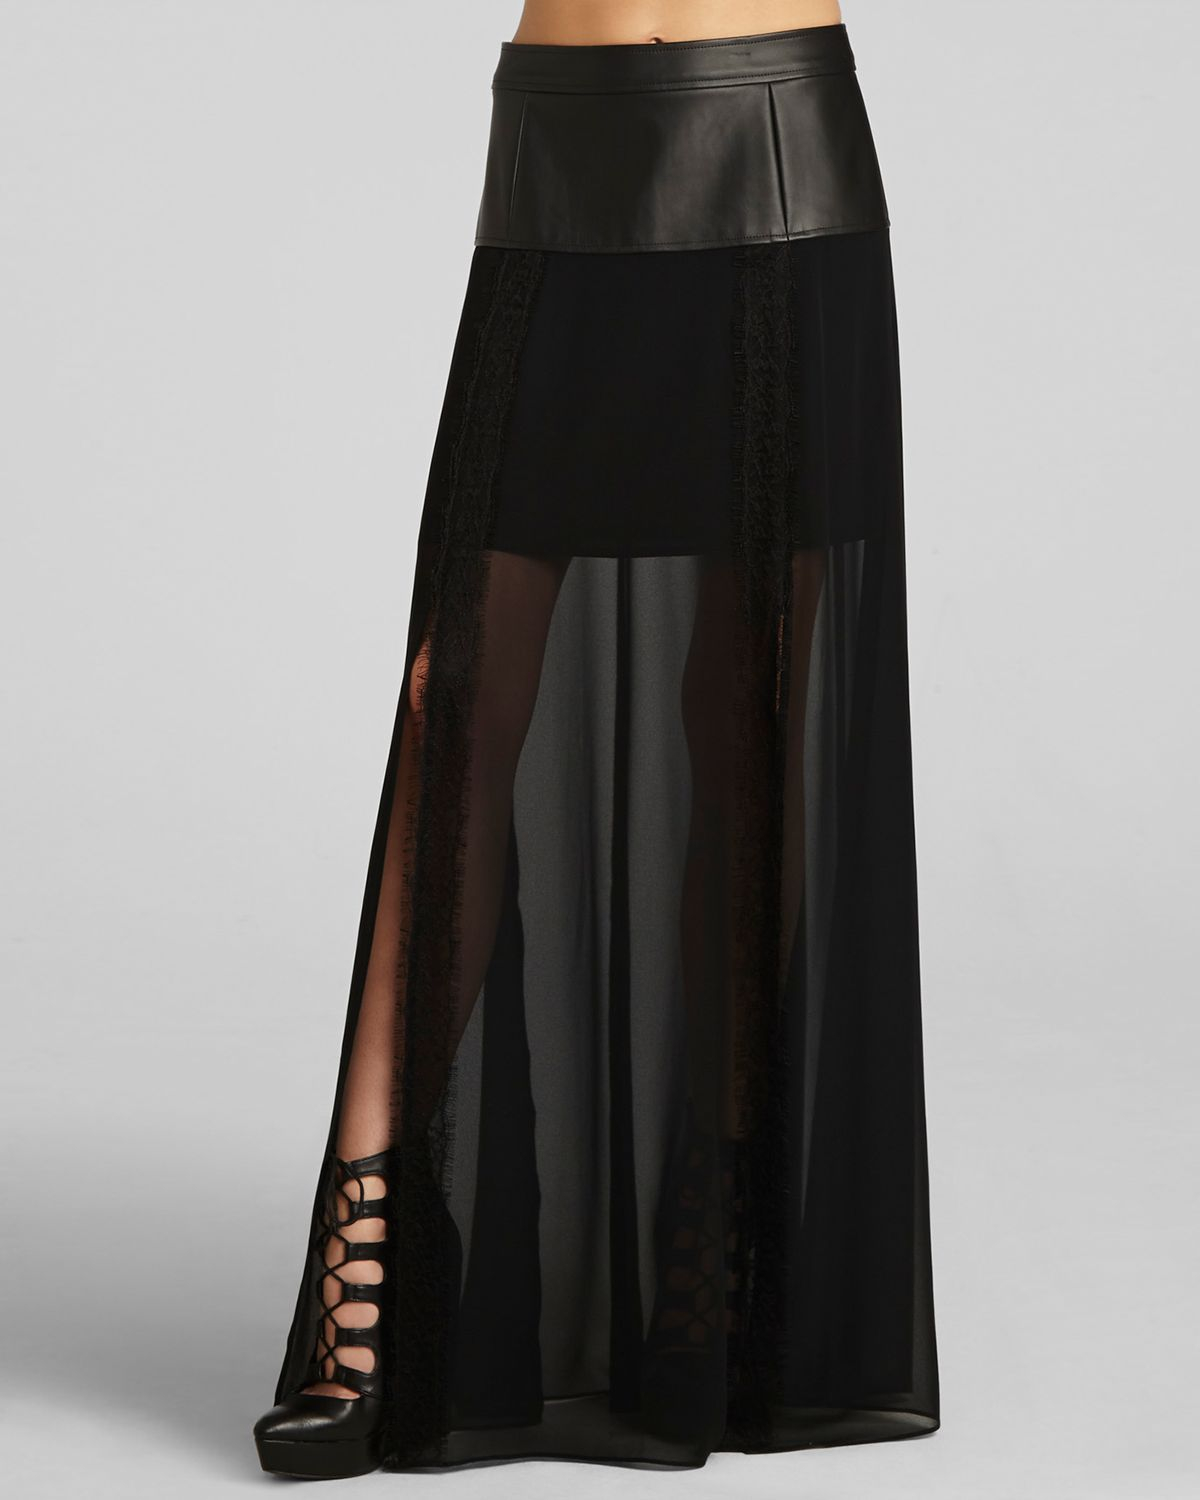 bcbgeneration maxi skirt faux leather and chiffon in black